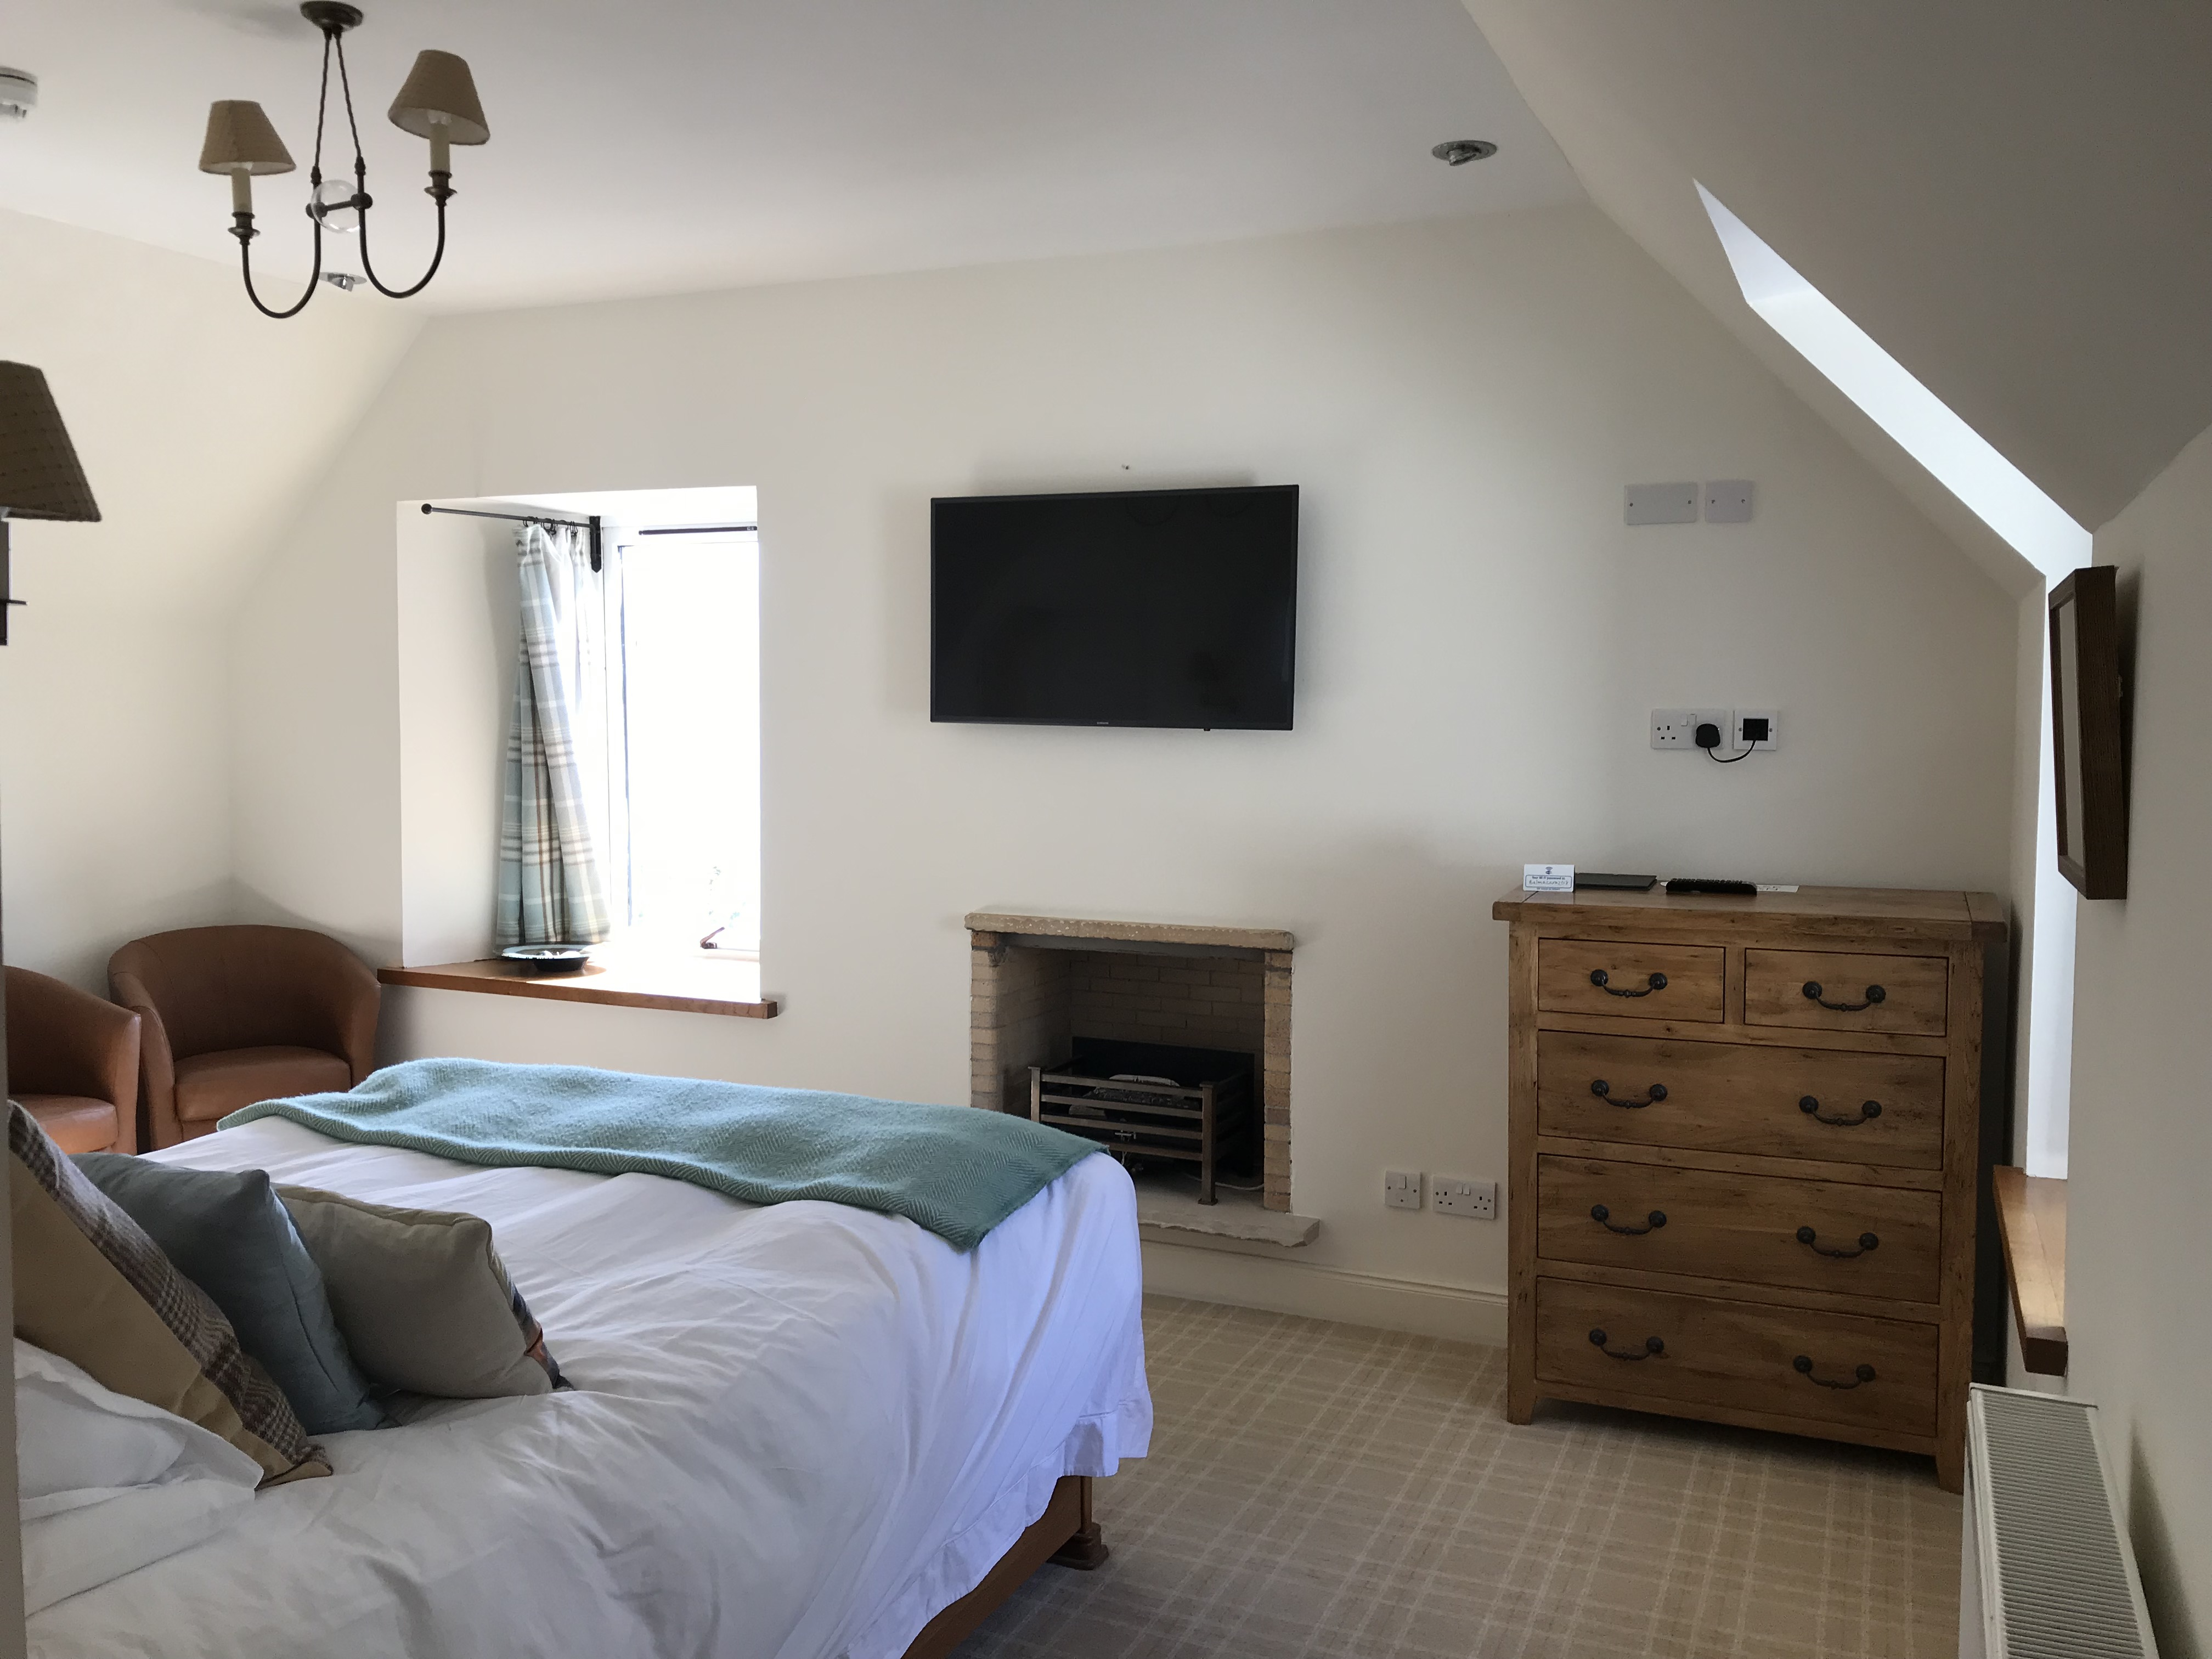 LUXURY KING SIZE ROOM WITH A DOUBLE BED AND LARGE BATHROOM